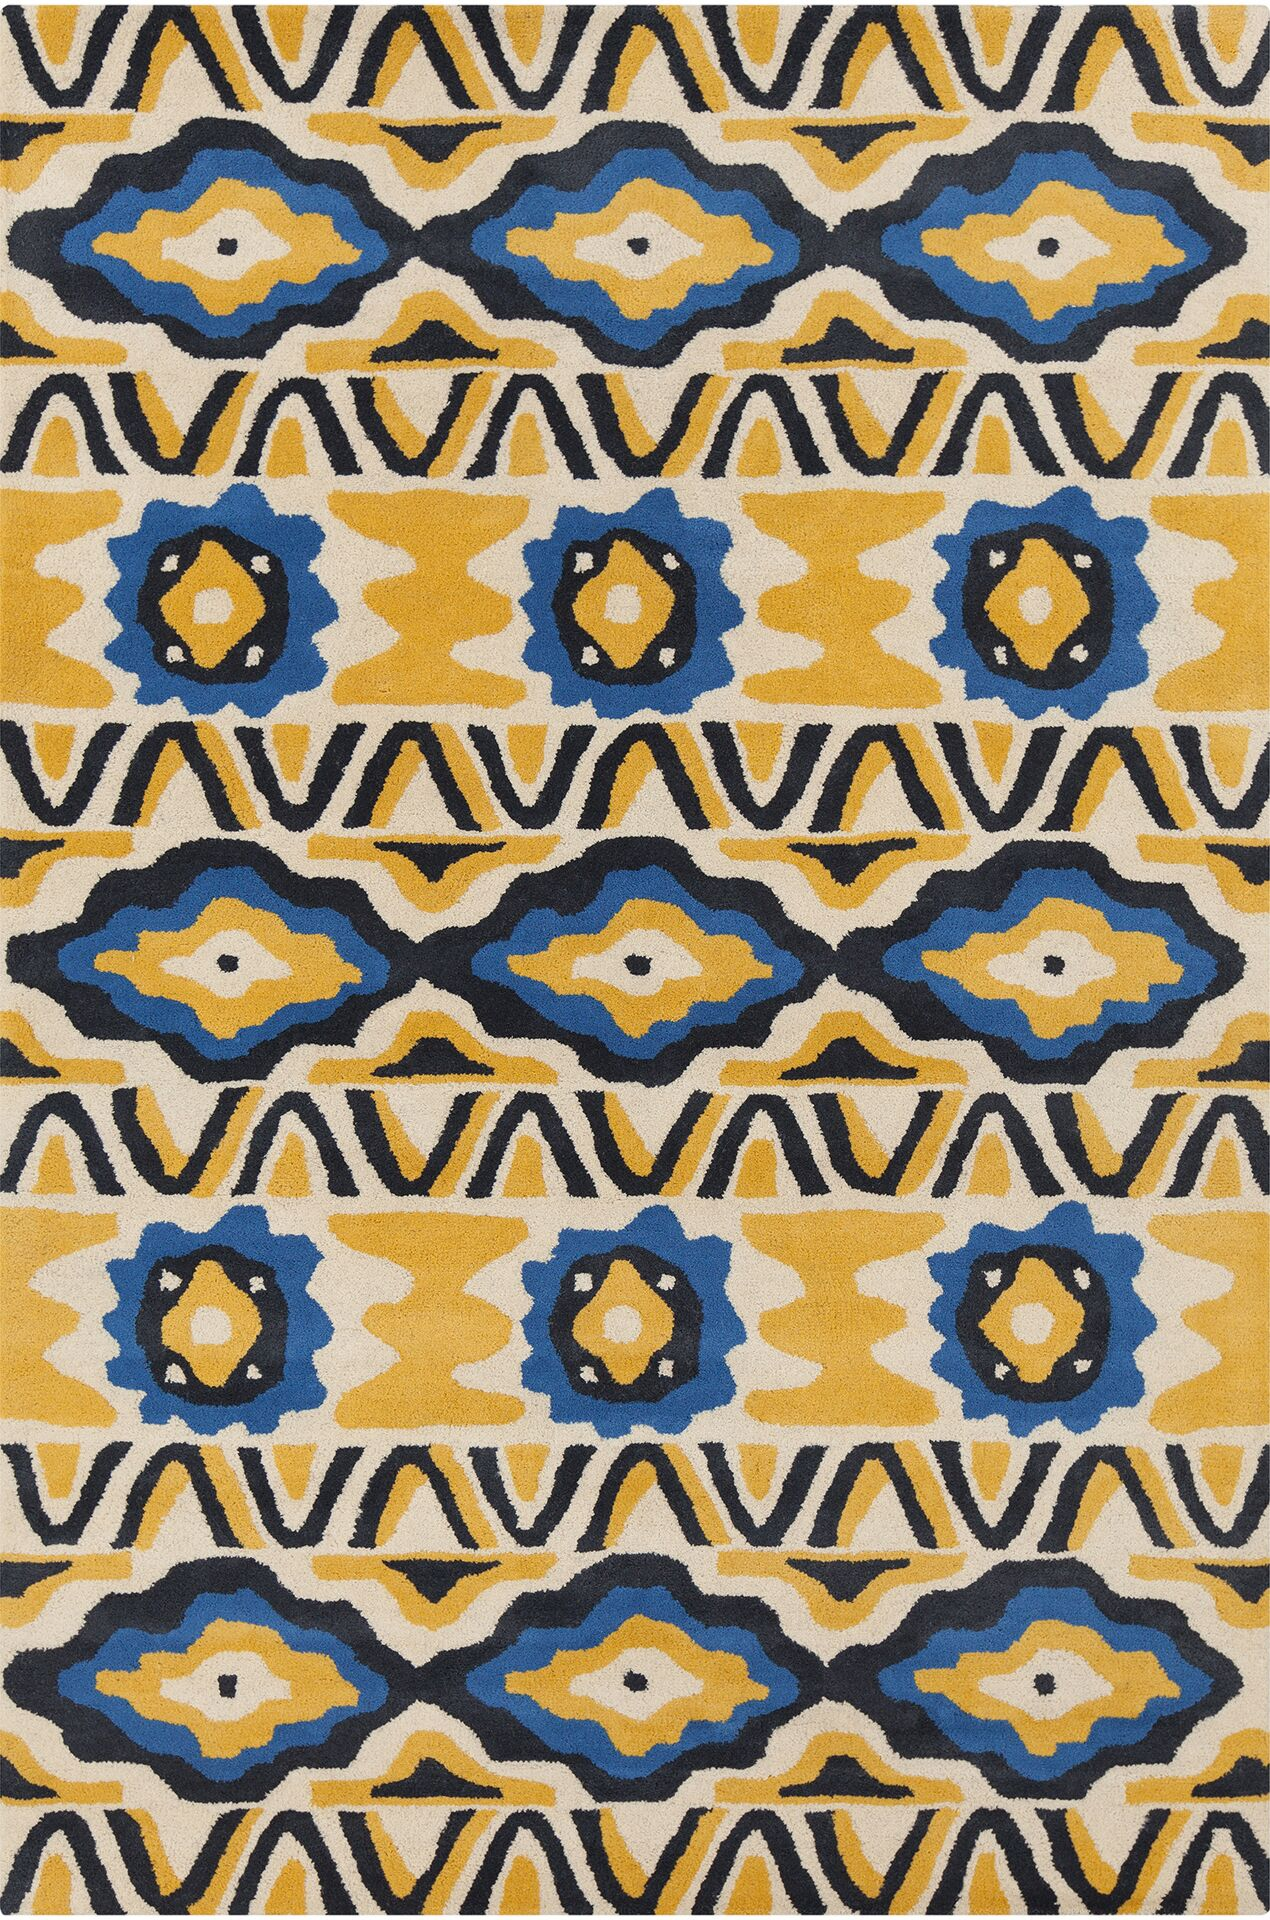 Gibbons Patterned Contemporary Wool Yellow/Blue Area Rug Rug Size: 5' x 7'6